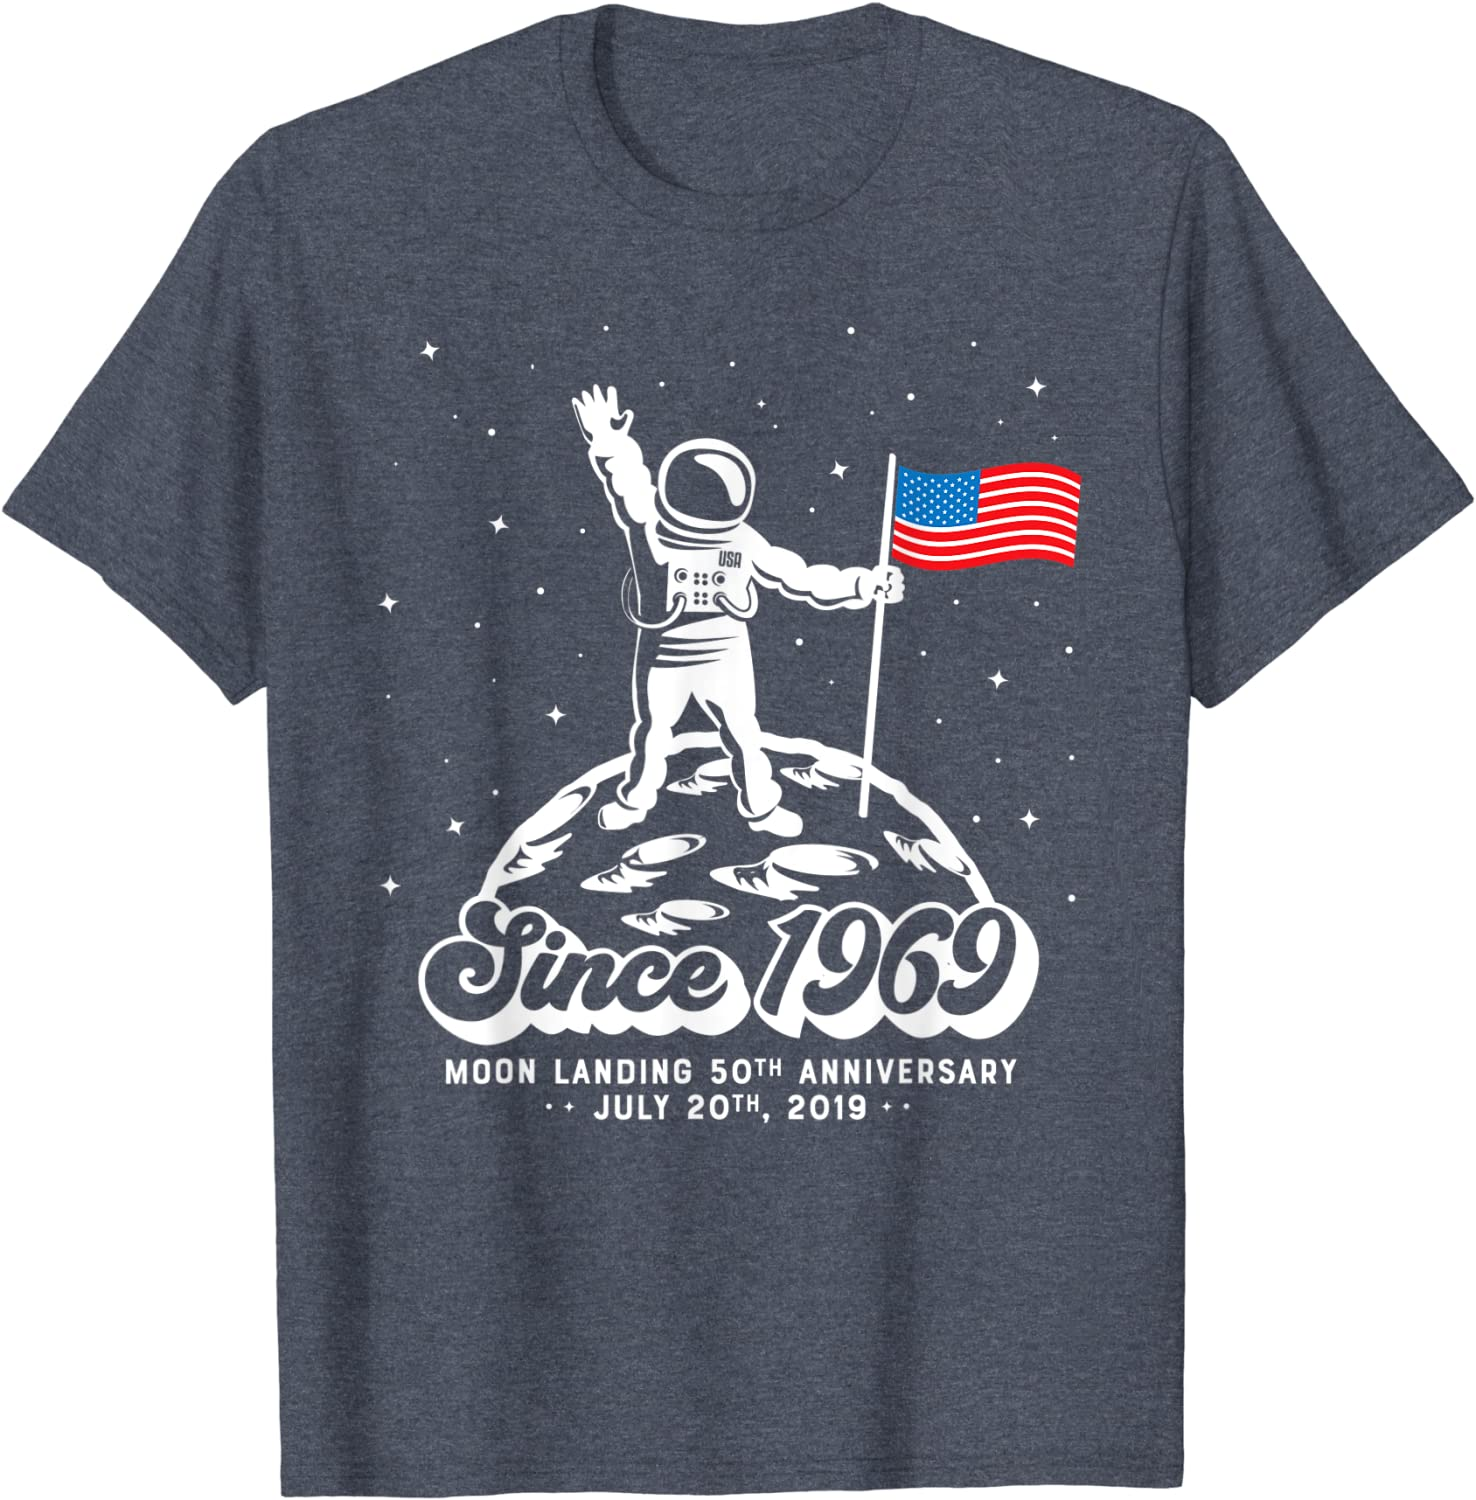 Retro Science Shirt Moon Landing 50th Anniversary Shirt Man On Moon 50 Years Space Lover Gift Apollo 11 T Shirt Vintage Coloring